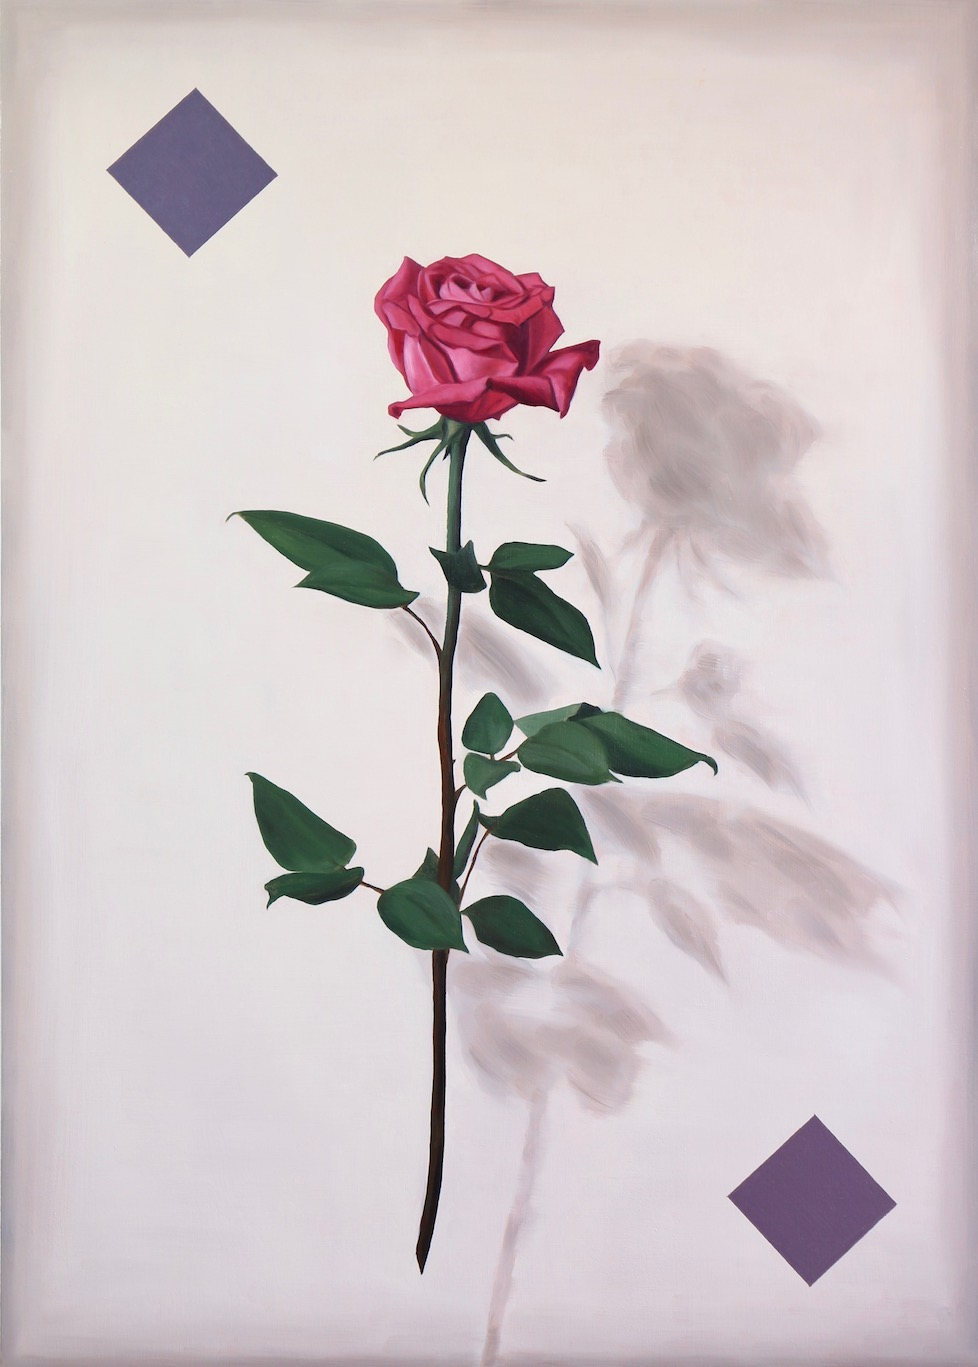 Portrait of a Rose, oil on wood panel, 70x50cm, 2018